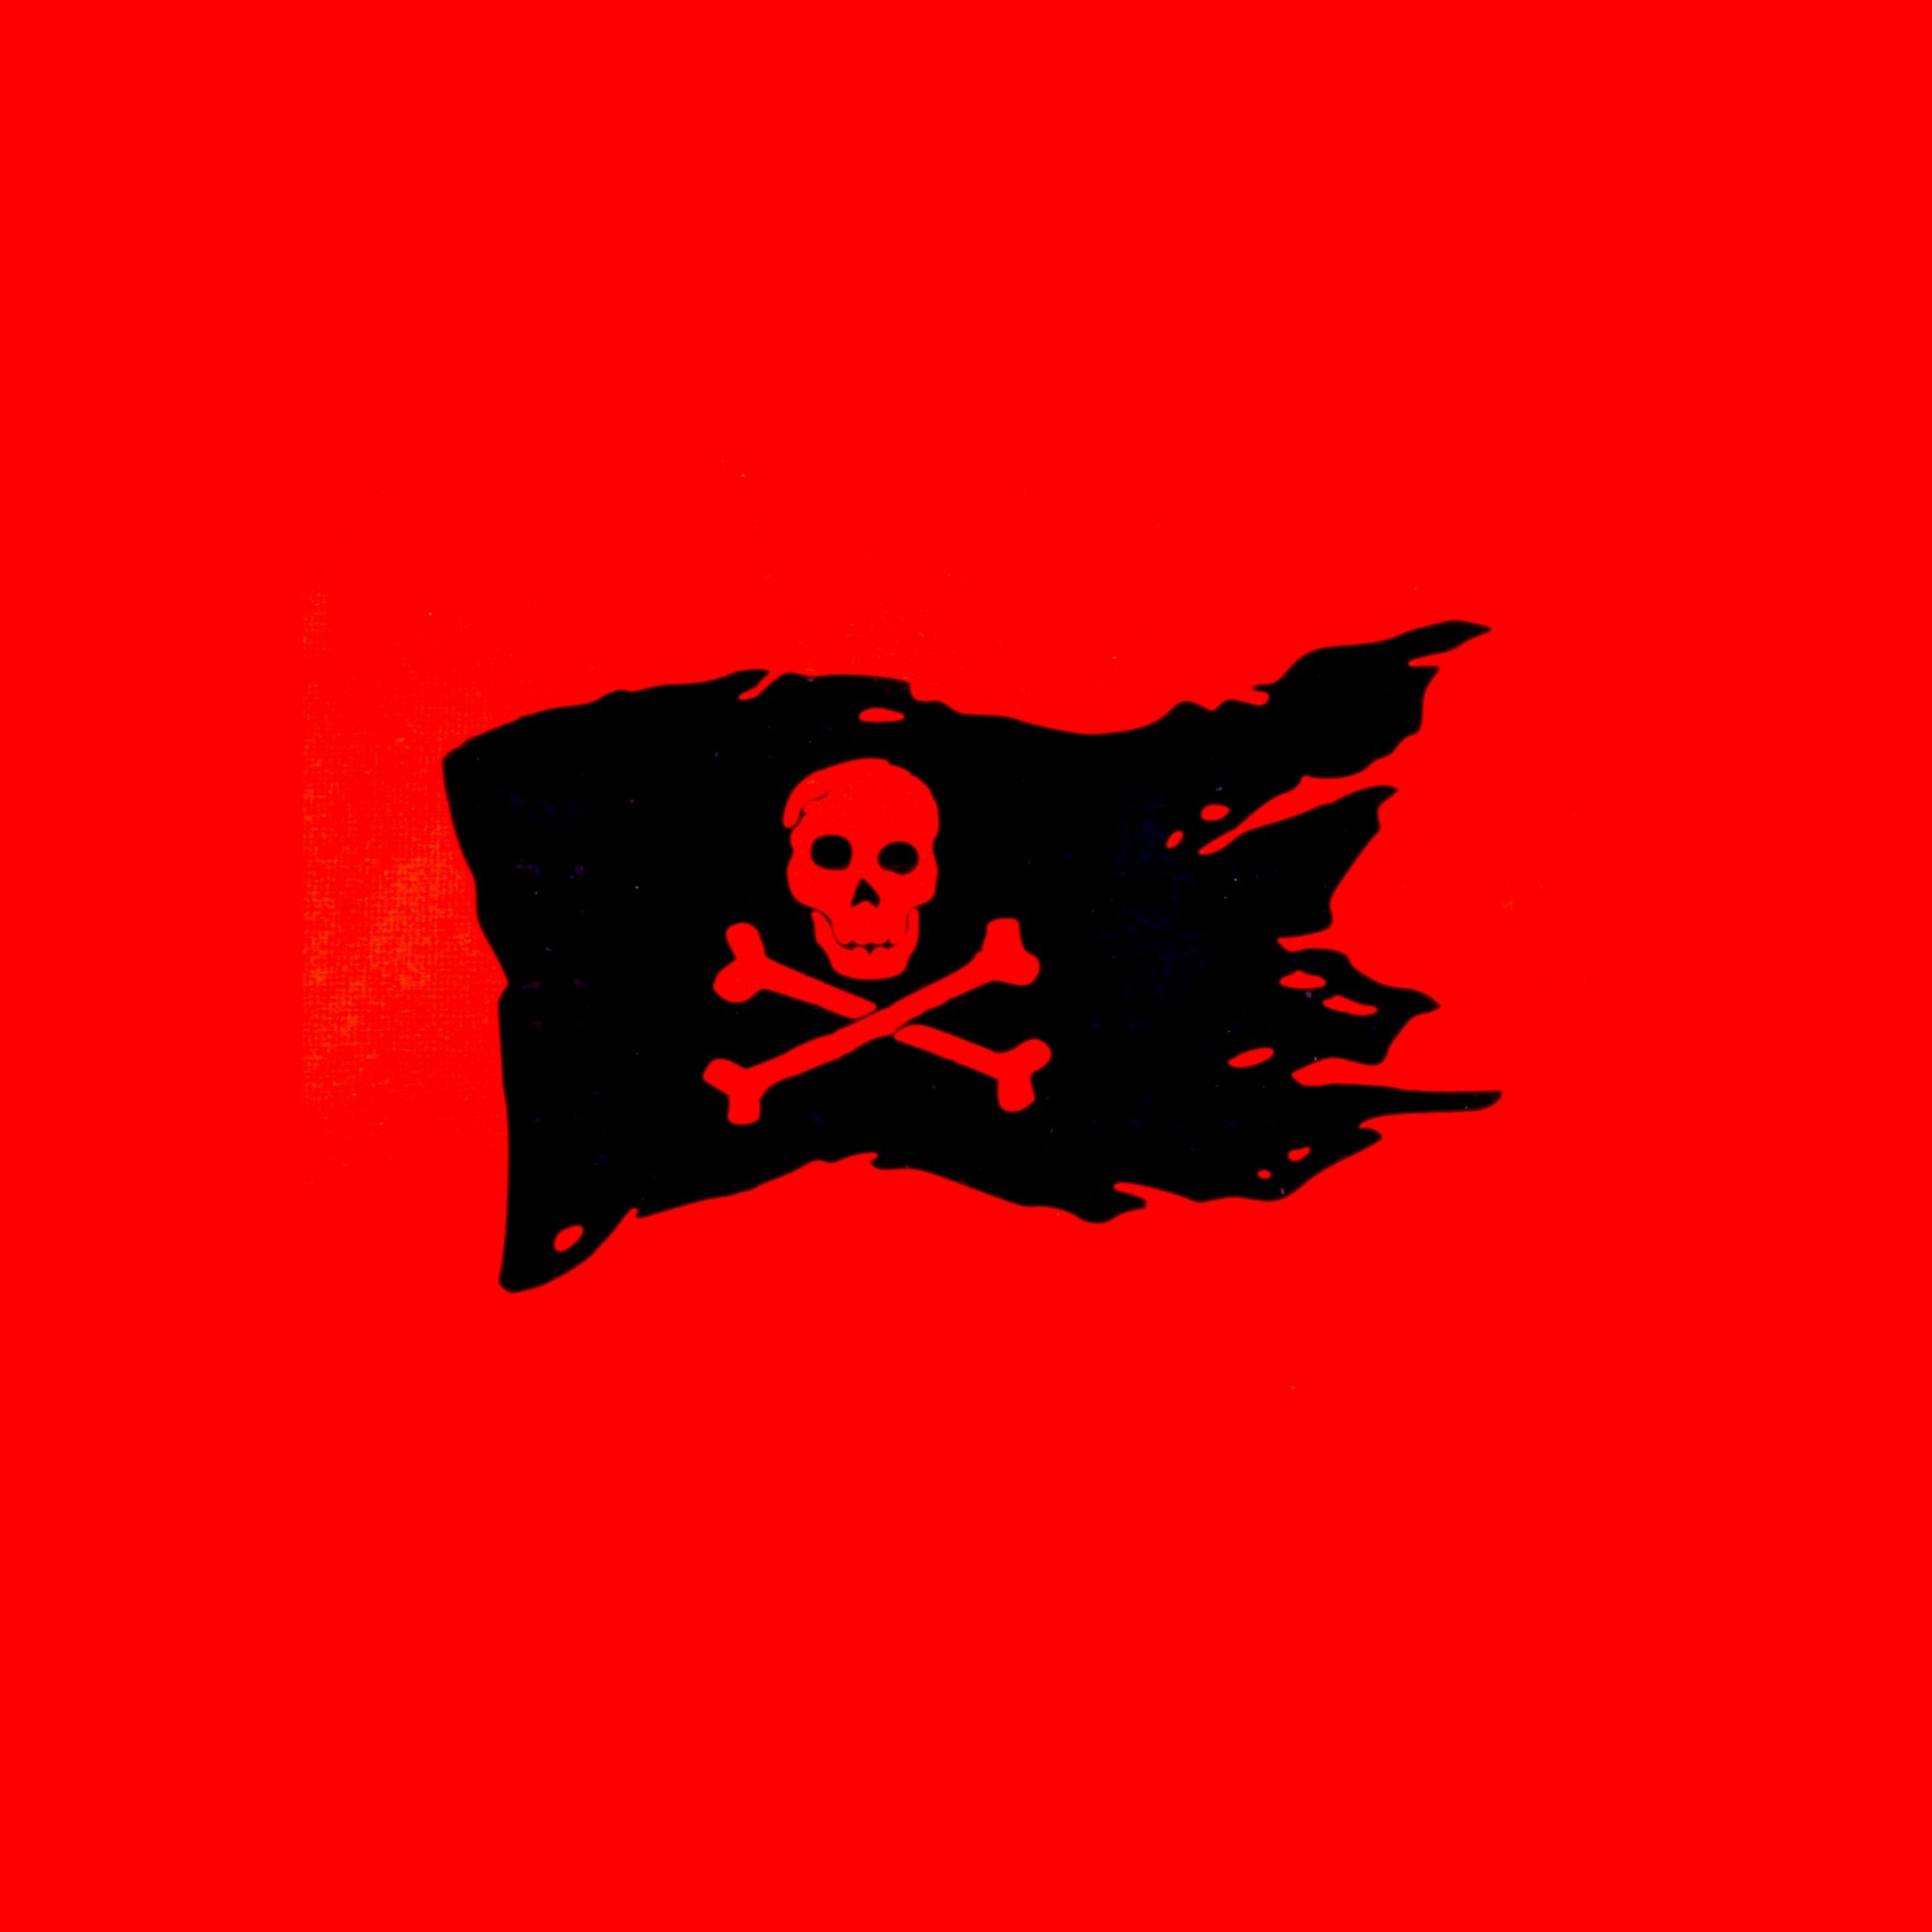 Pirate flag on red background